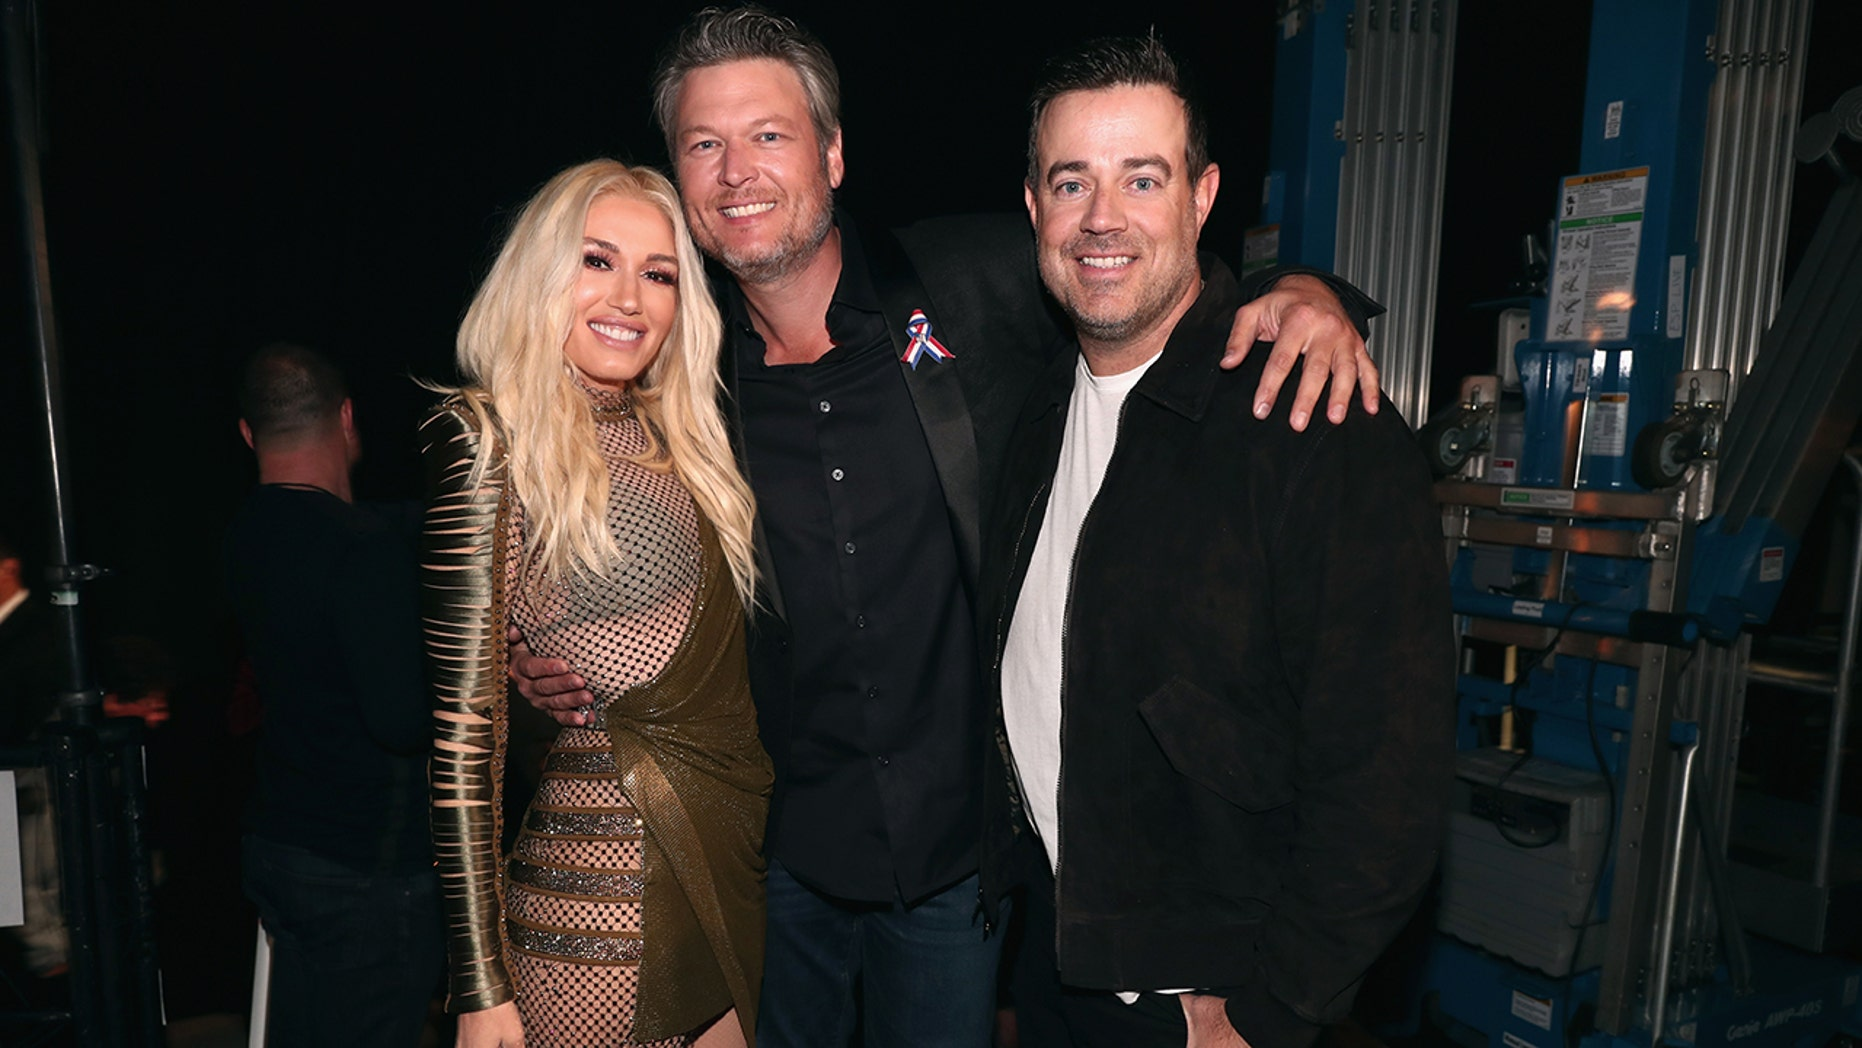 Pictured: (l-r) Recording artists-TV personalities Gwen Stefani and Blake Shelton and TV personality Carson Daly pose during the 2018 E! People's Choice Awards held at the Barker Hangar on November 11, 2018.